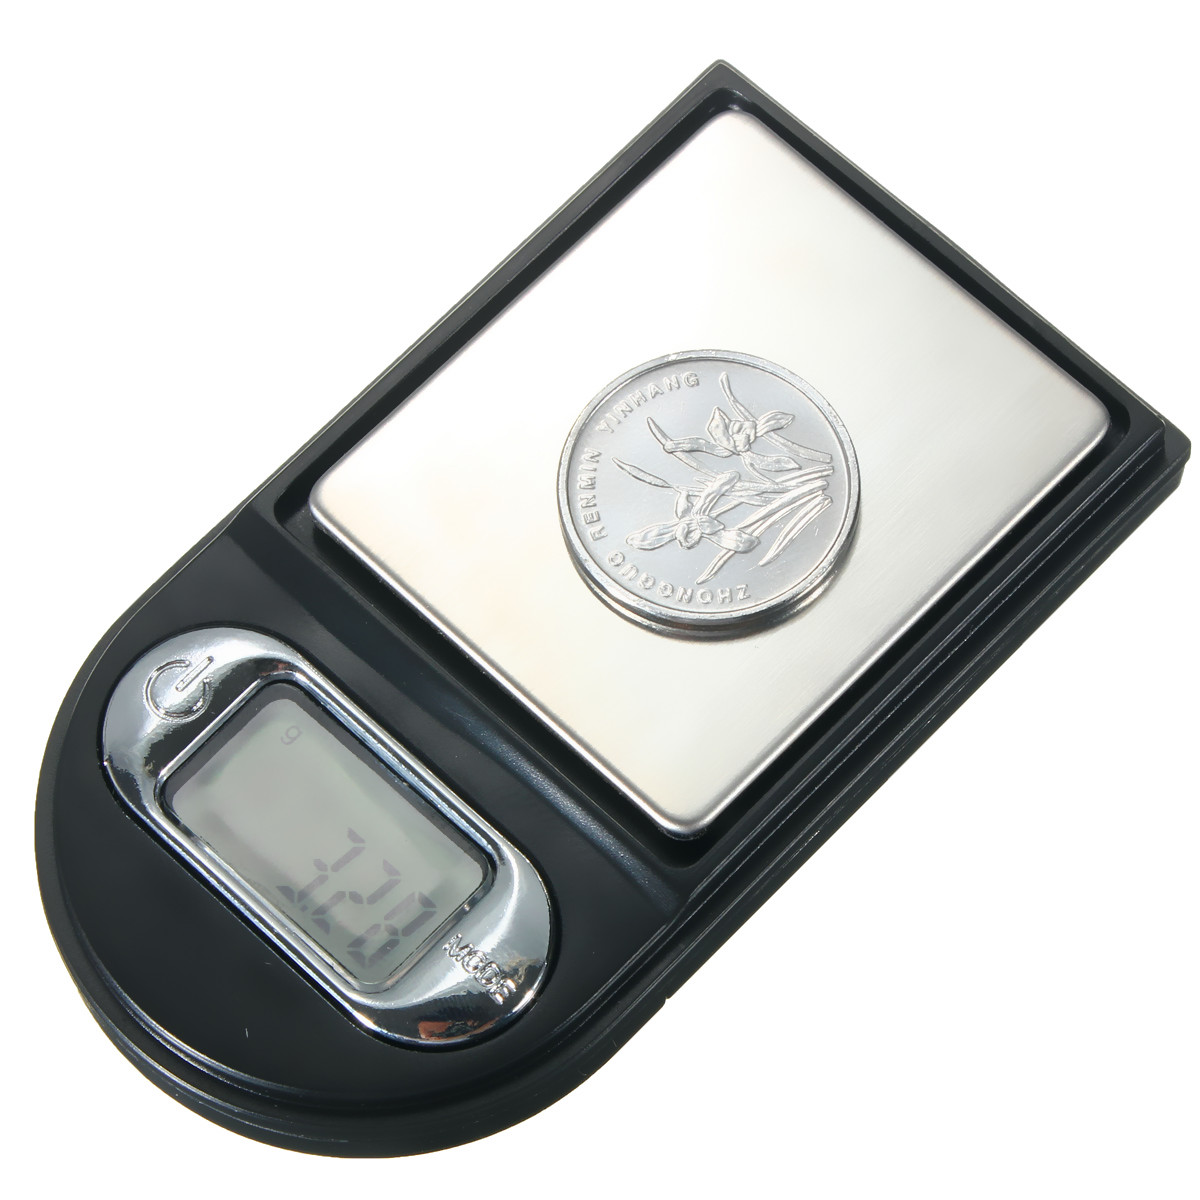 100gx0.01g Lighter Shape Mini Digital Jewelry Pocket  Scale LCD